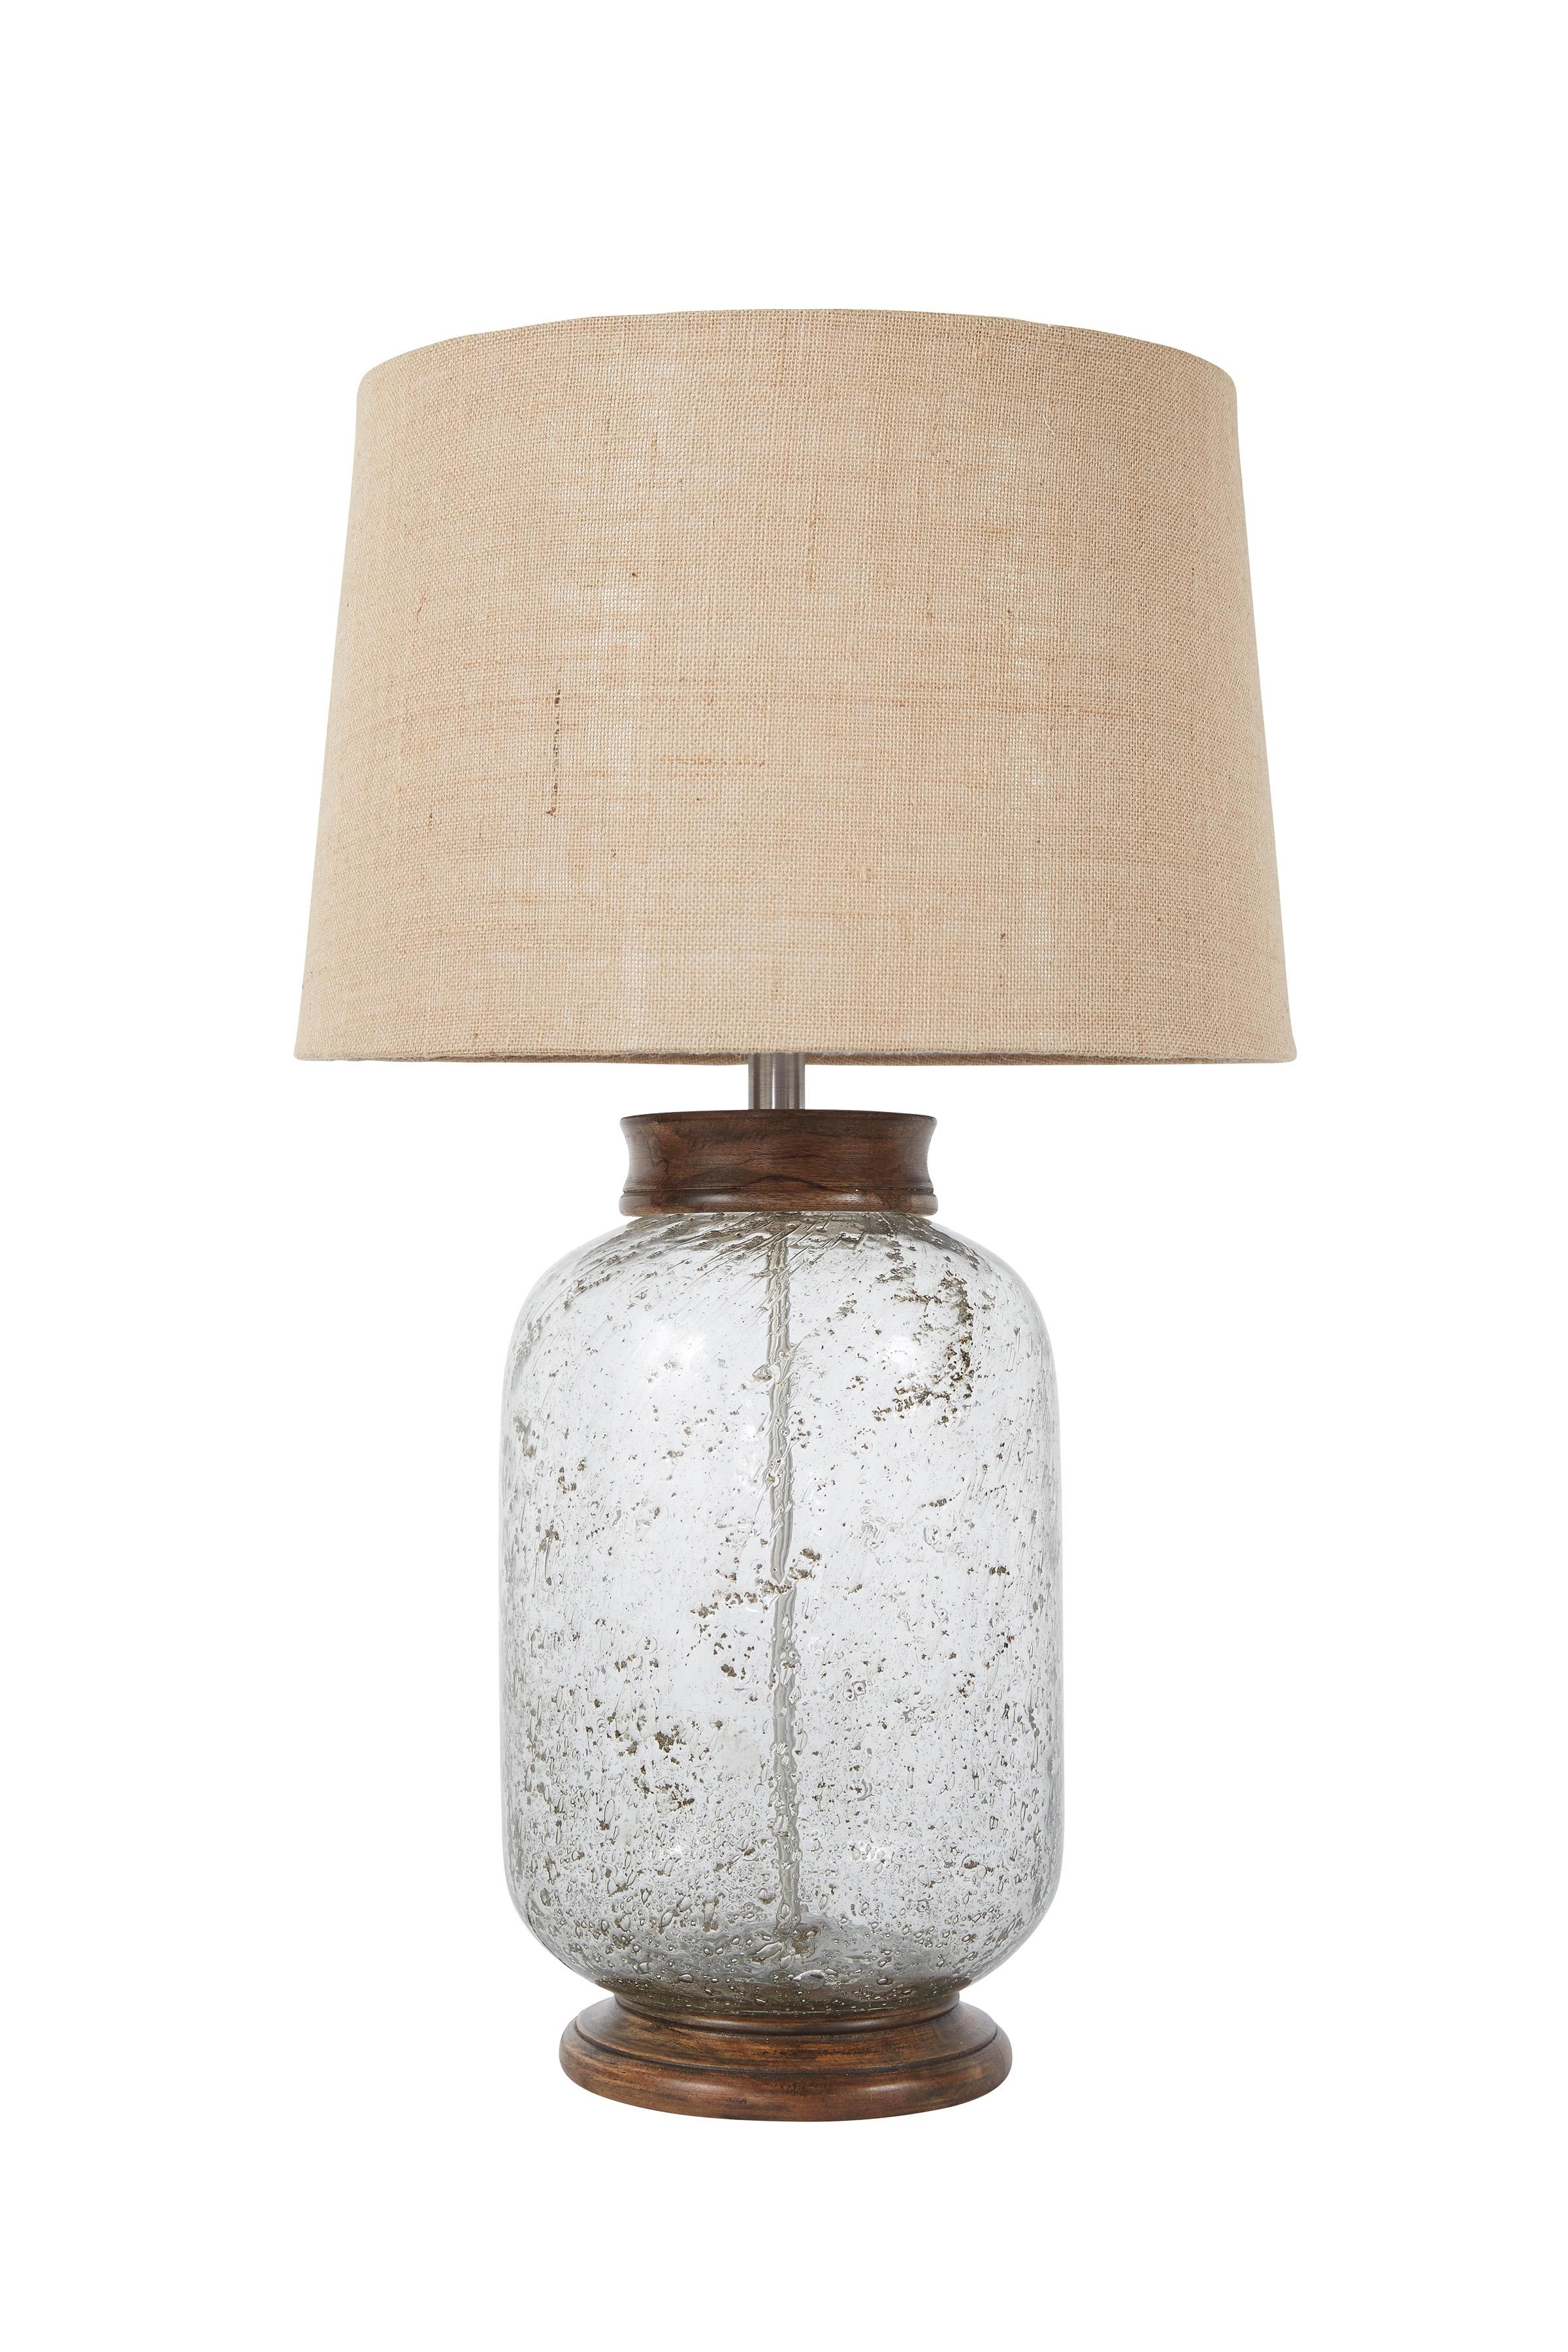 Signature Design by Ashley Lamps - Vintage Style Shaunette Seeded Glass Table Lamp - Item Number: L430204